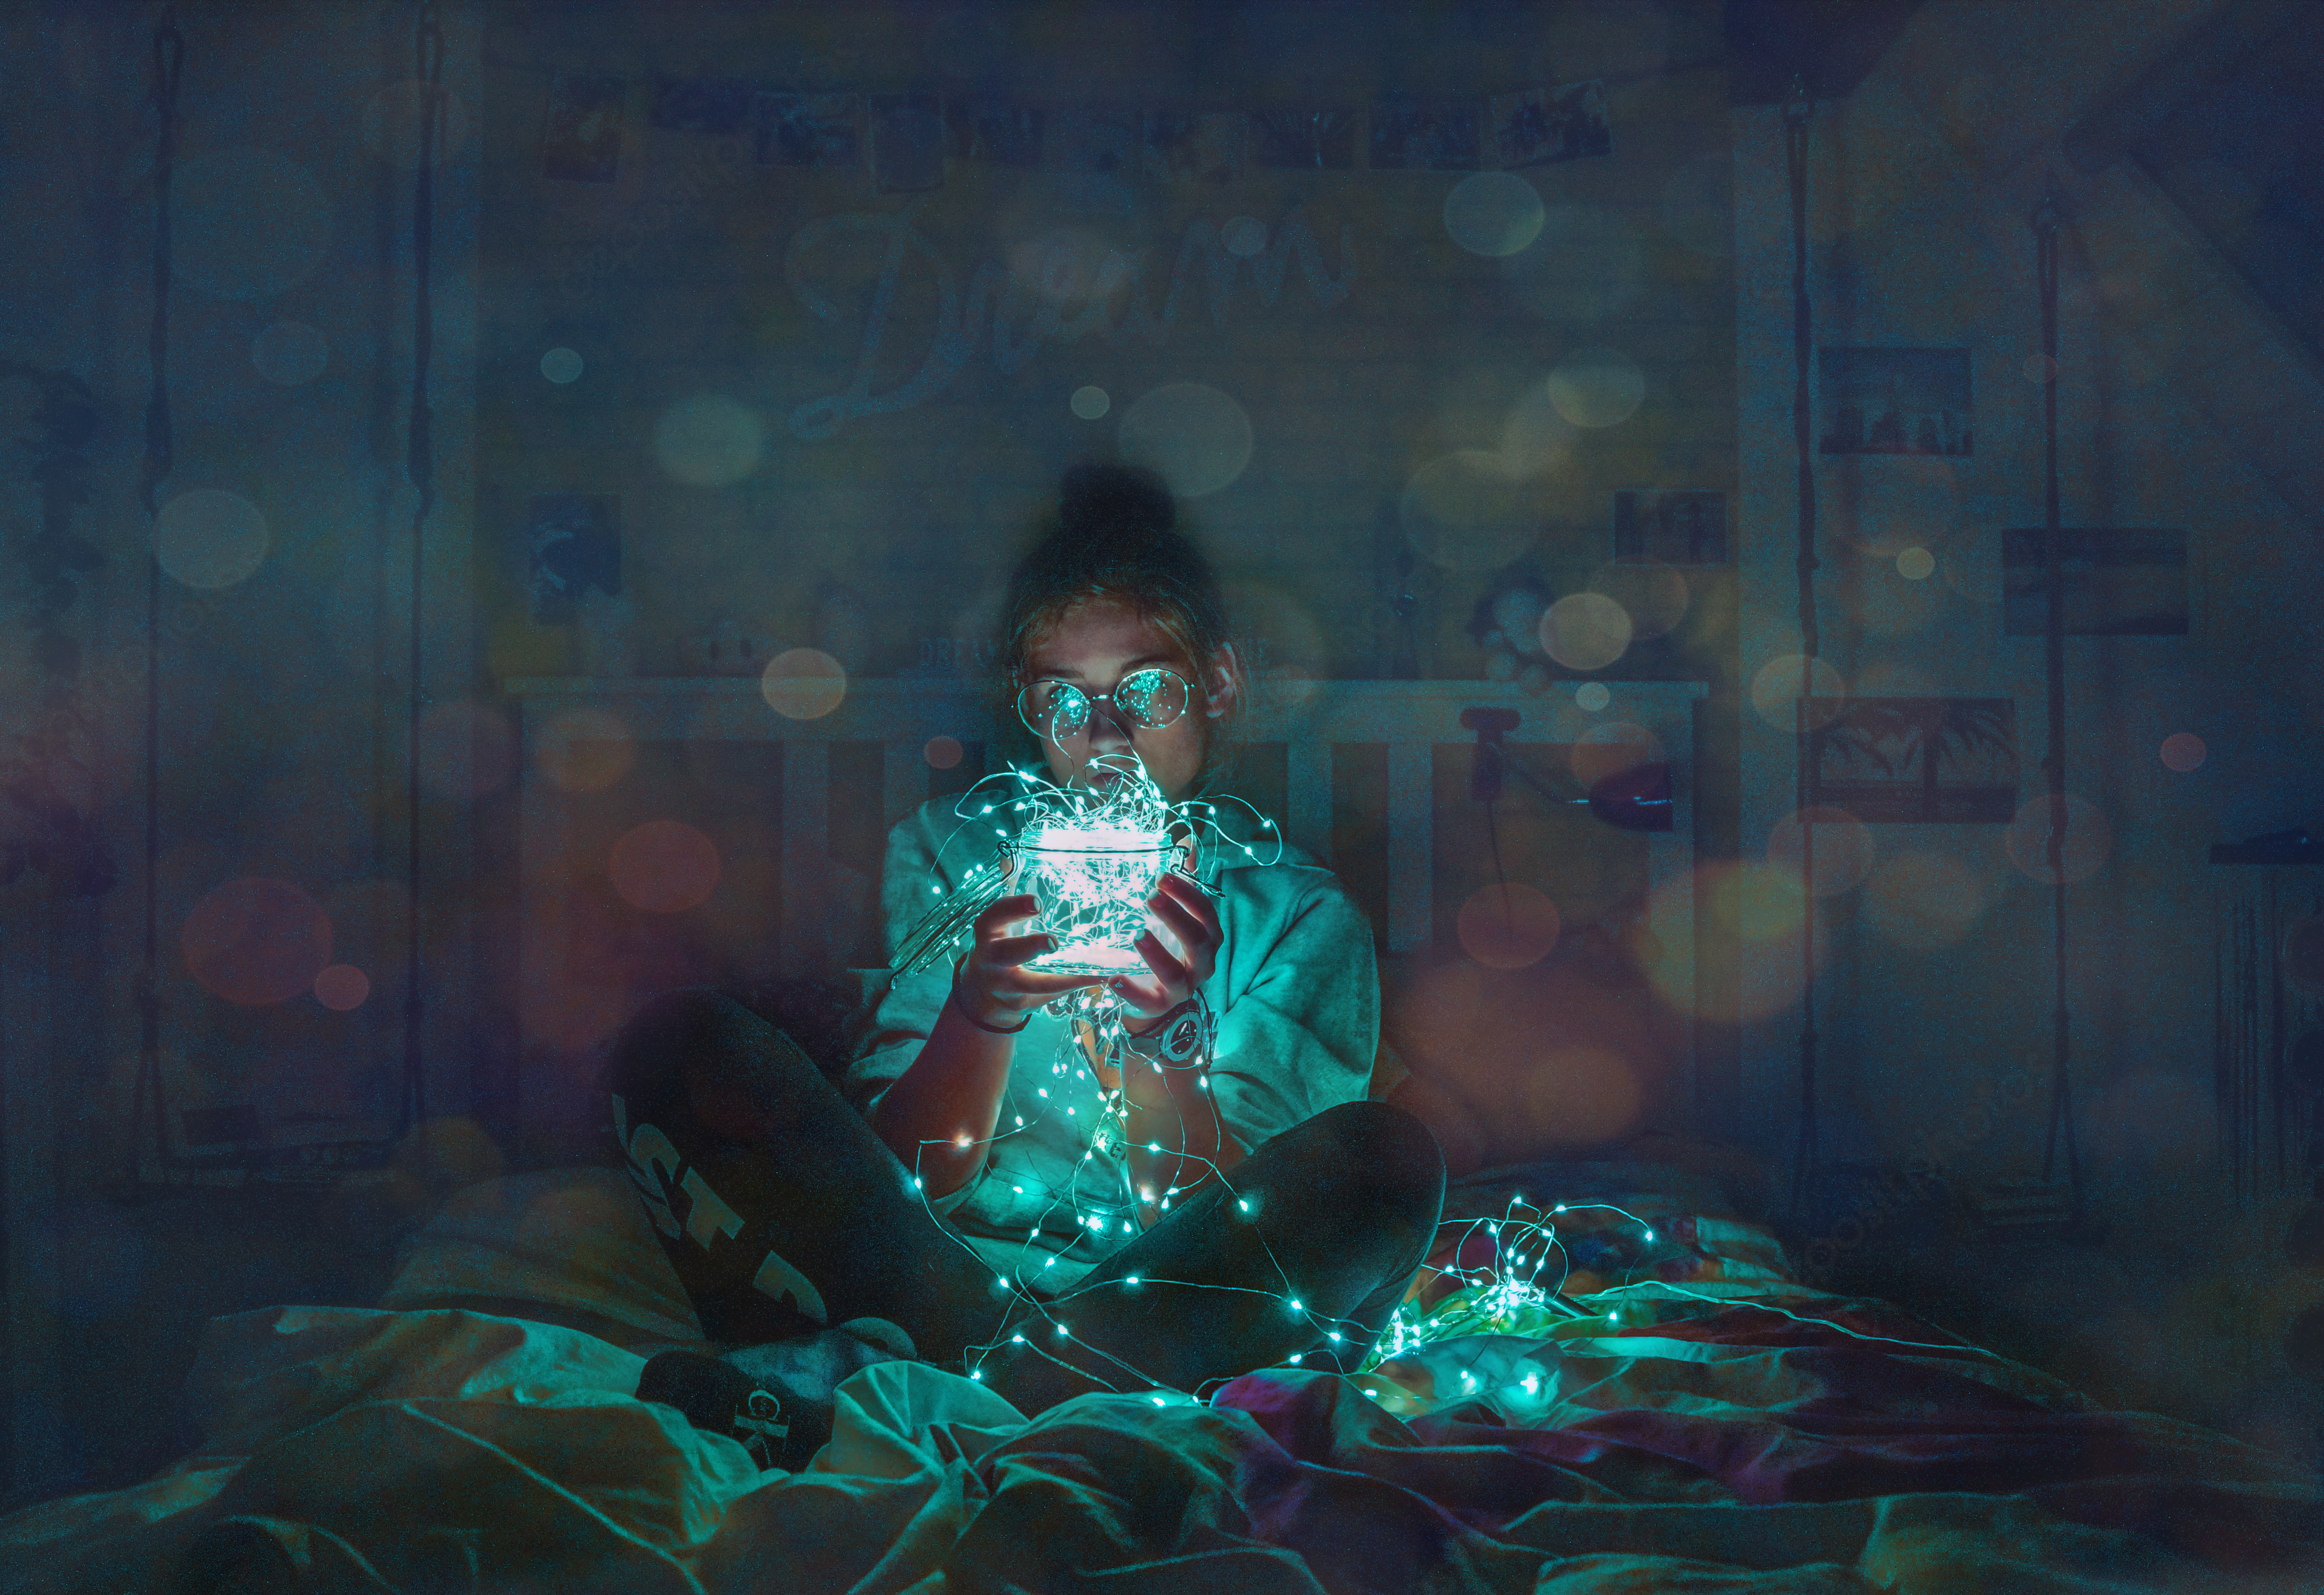 Facebook Wallpaper Girl There Is Always A Light For You Photo By Max Felner